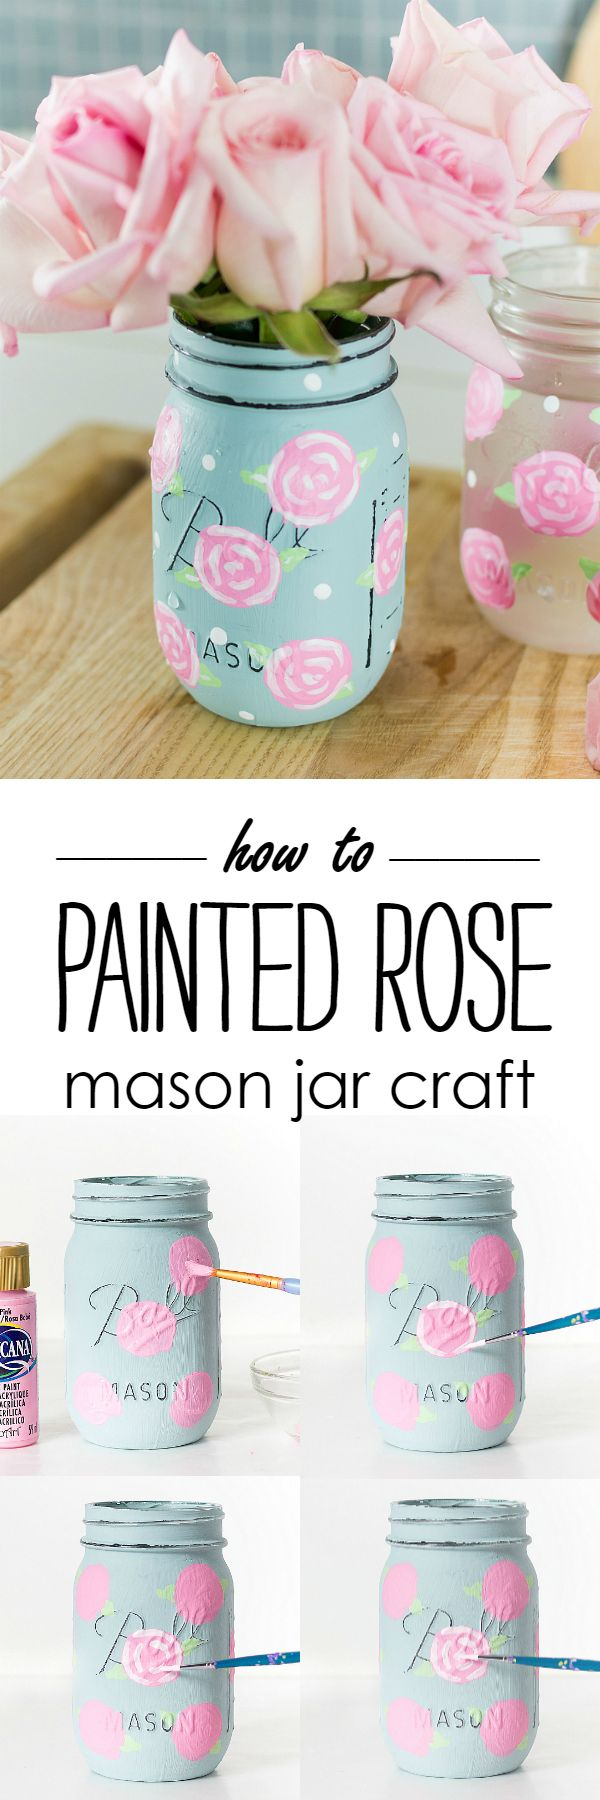 Best 25+ Mason jar diy ideas on Pinterest | Mason organization ...